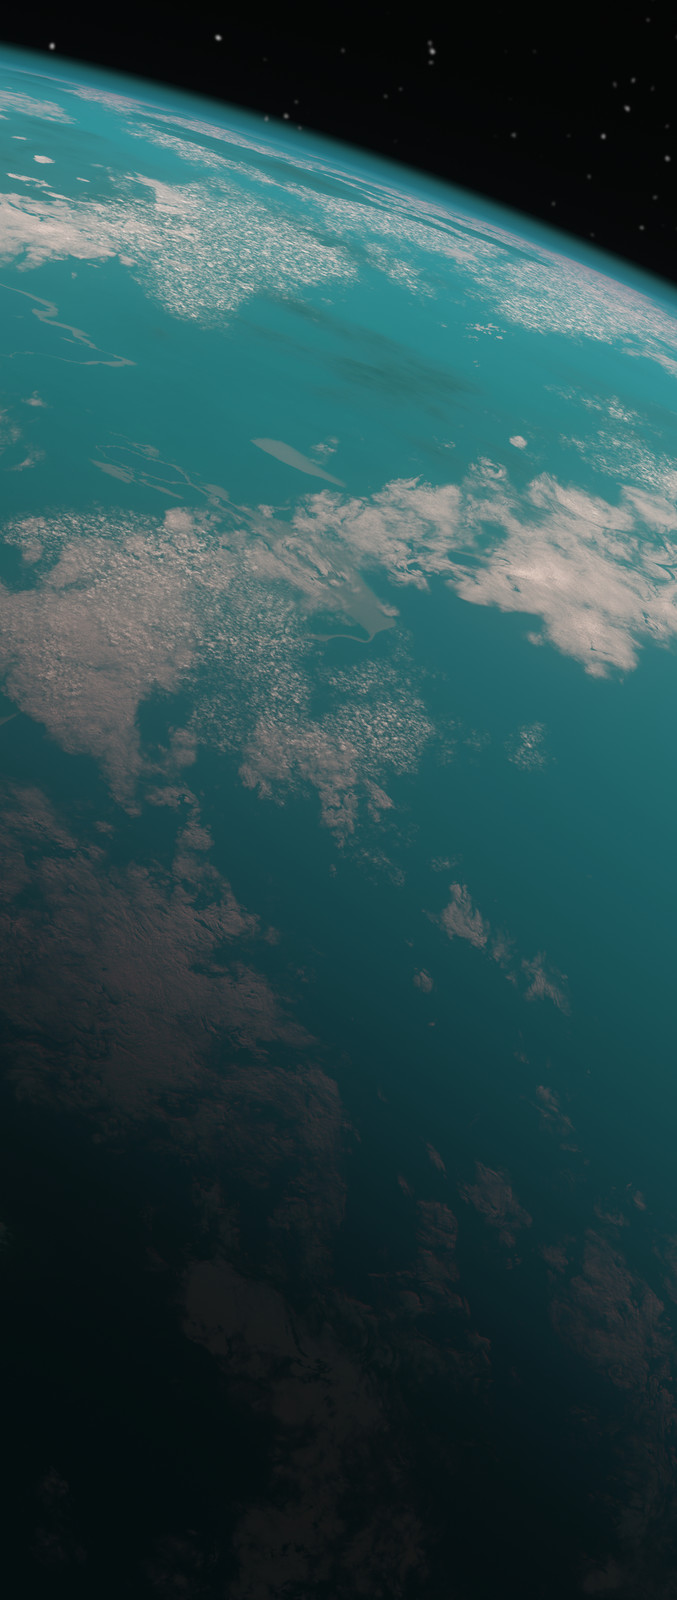 For such a large poster, I needed to render the planet at a very high resolution. This image shows a small section of detail at the native resolution.